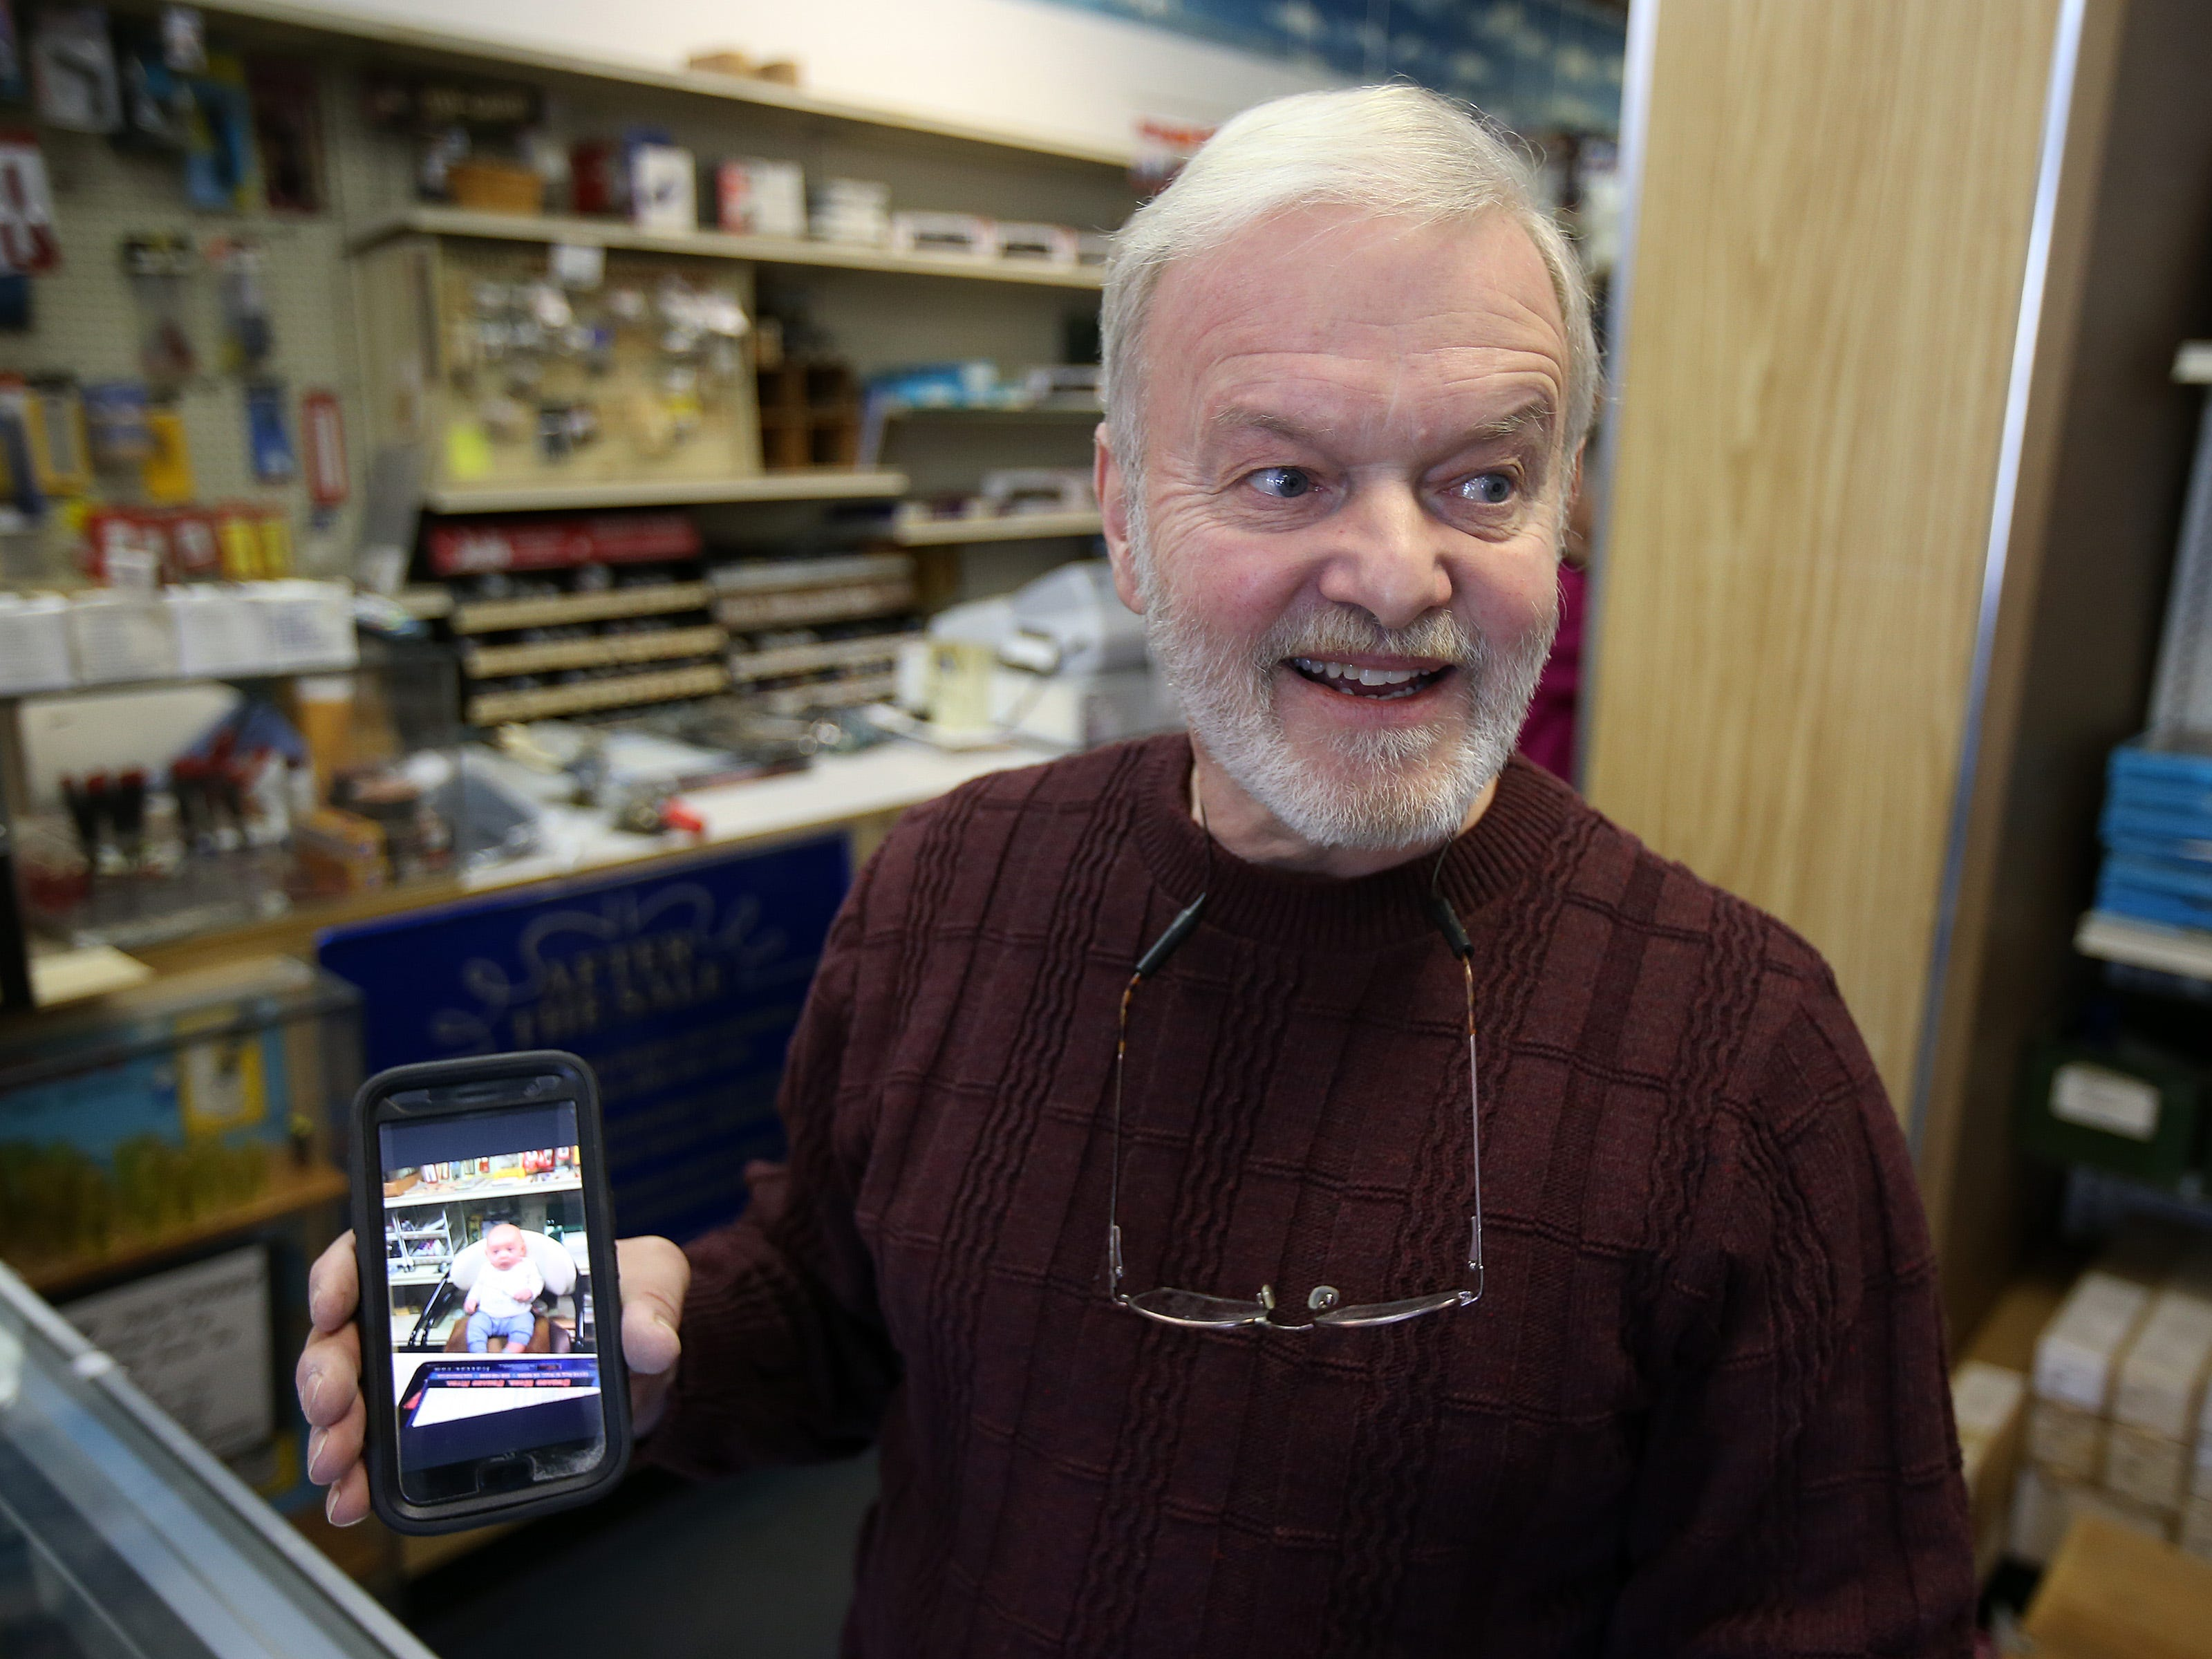 Frank Gustafson, owner of Jackson Hobby Shop, talks about retiring and closing after 50 years at Jackson Hobby Shop in Jackson, NJ Friday January 11, 2019.  He plans to stay in Jackson so he can be close to his 5-month-old grandson, Grayson, who is pictured on his phone.